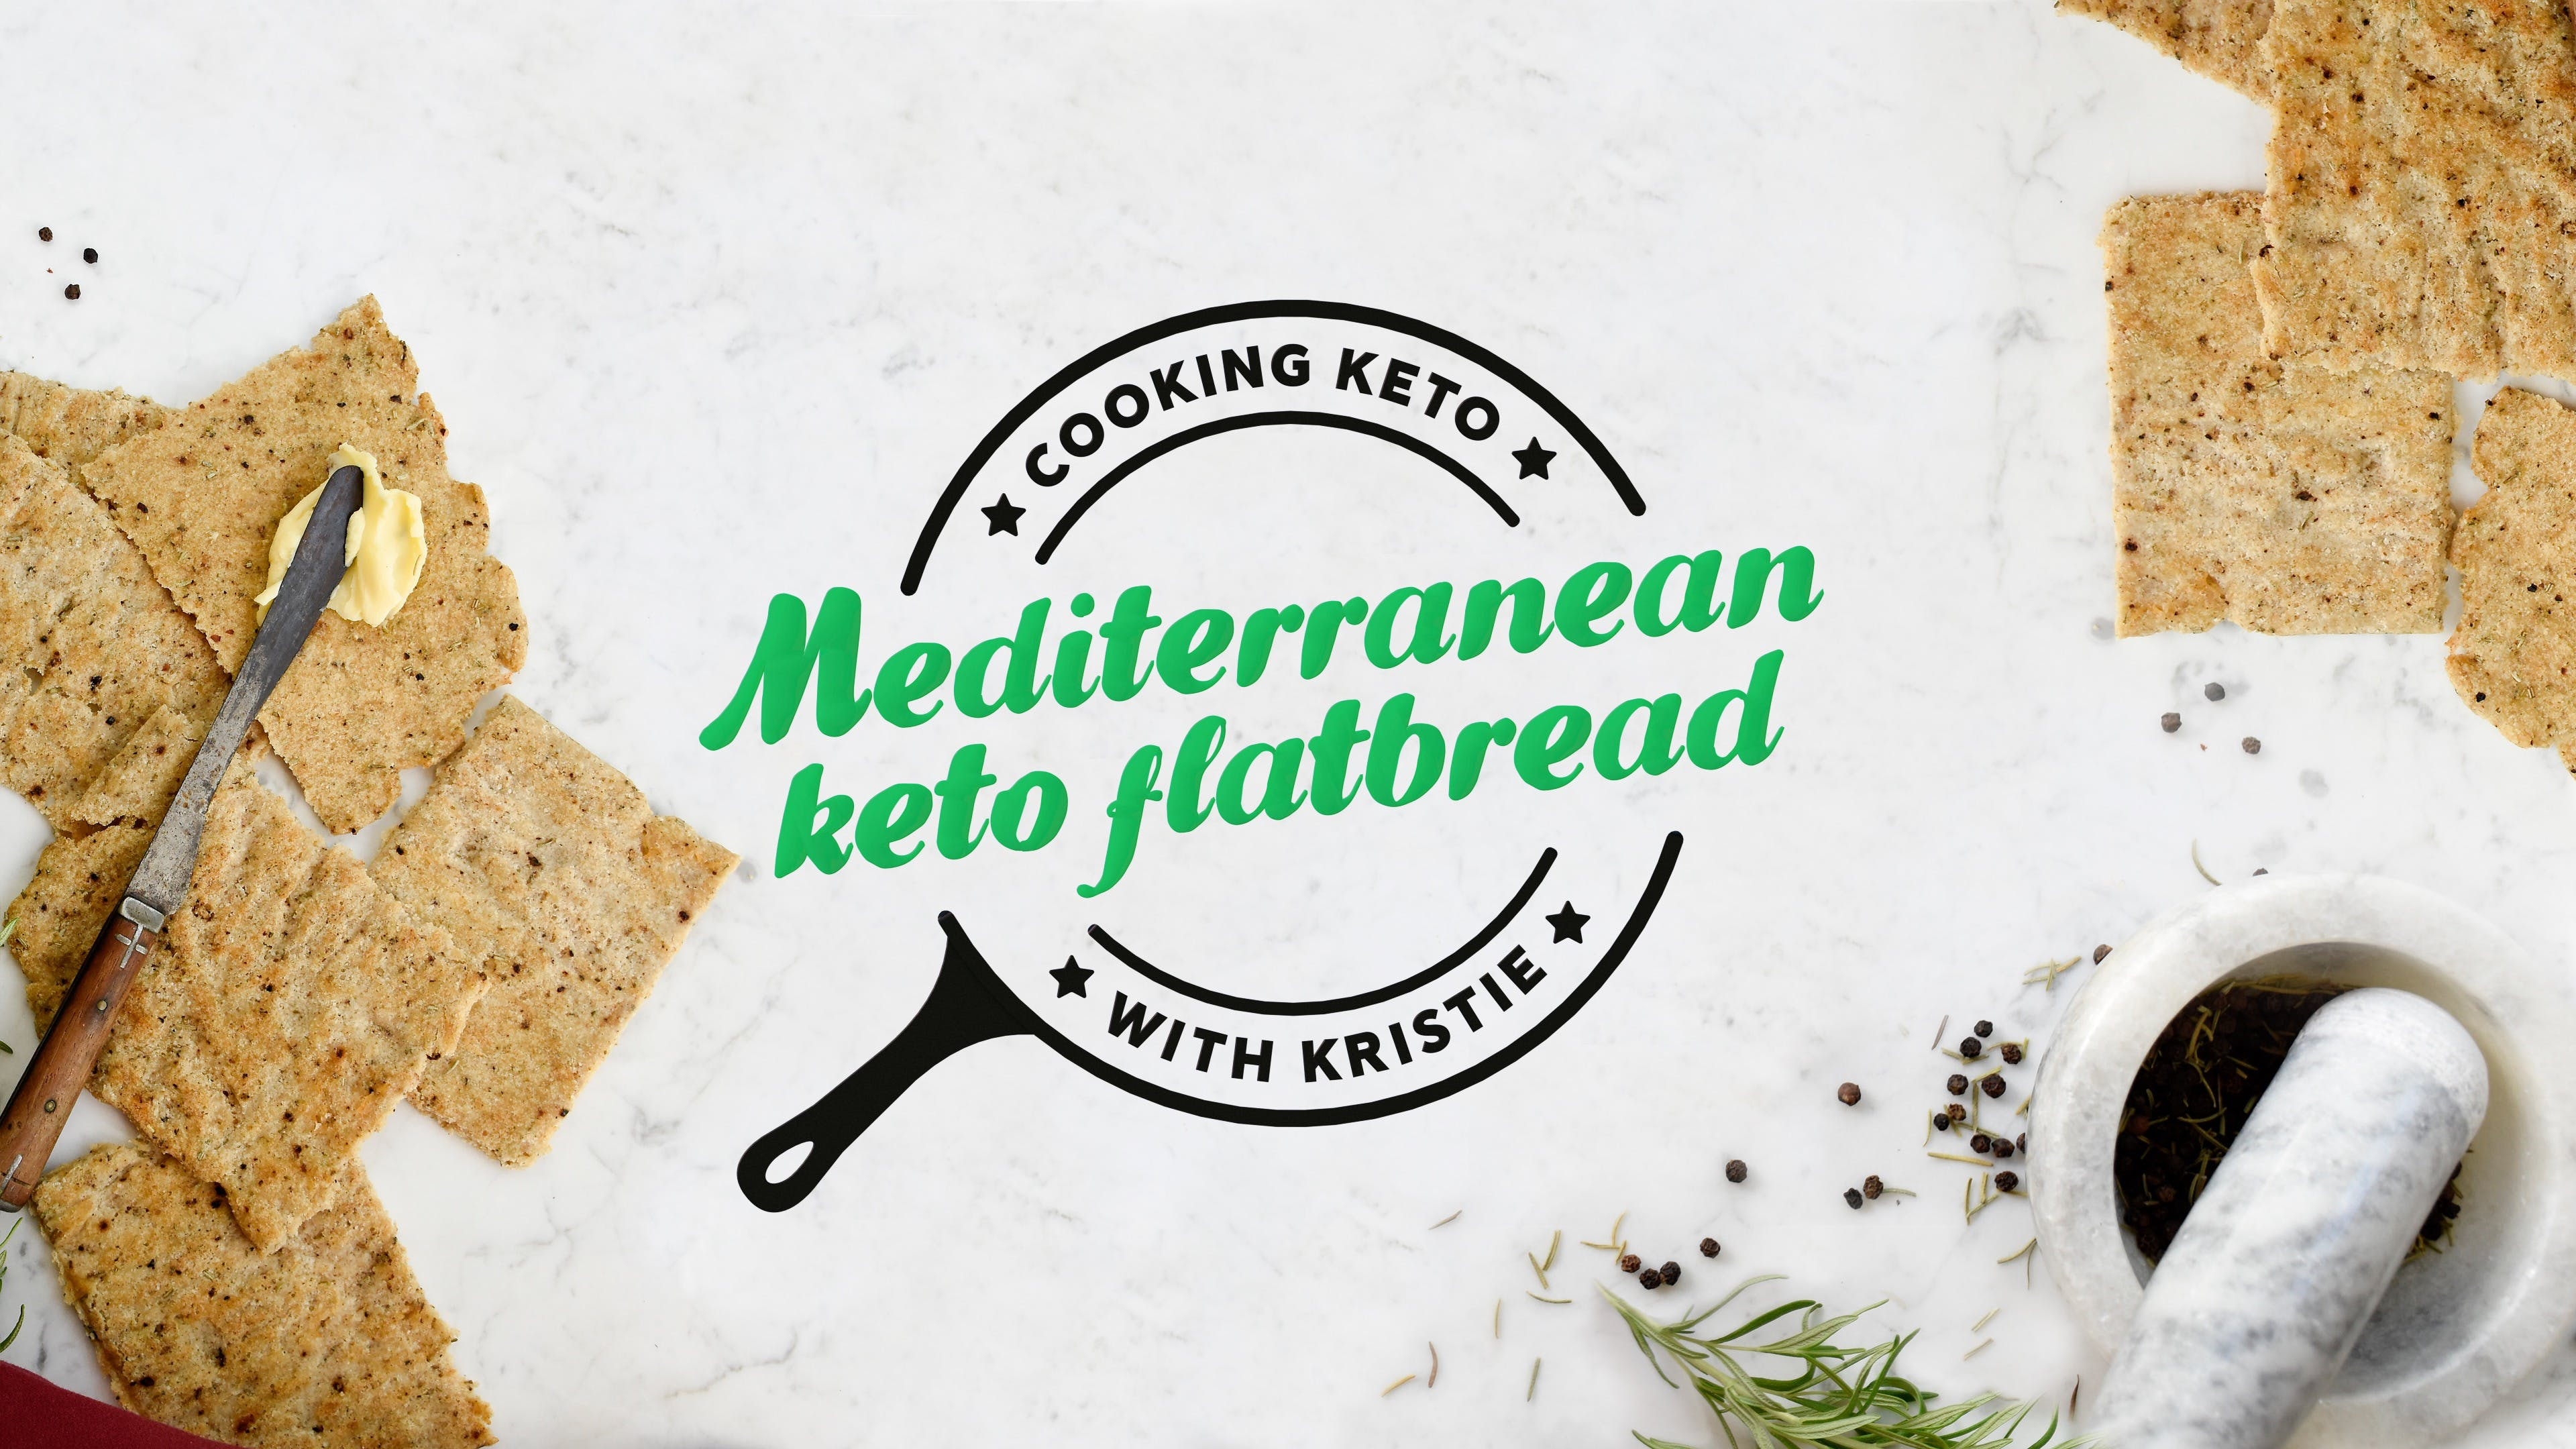 Cooking keto with Kristie – Mediterranean keto flatbread